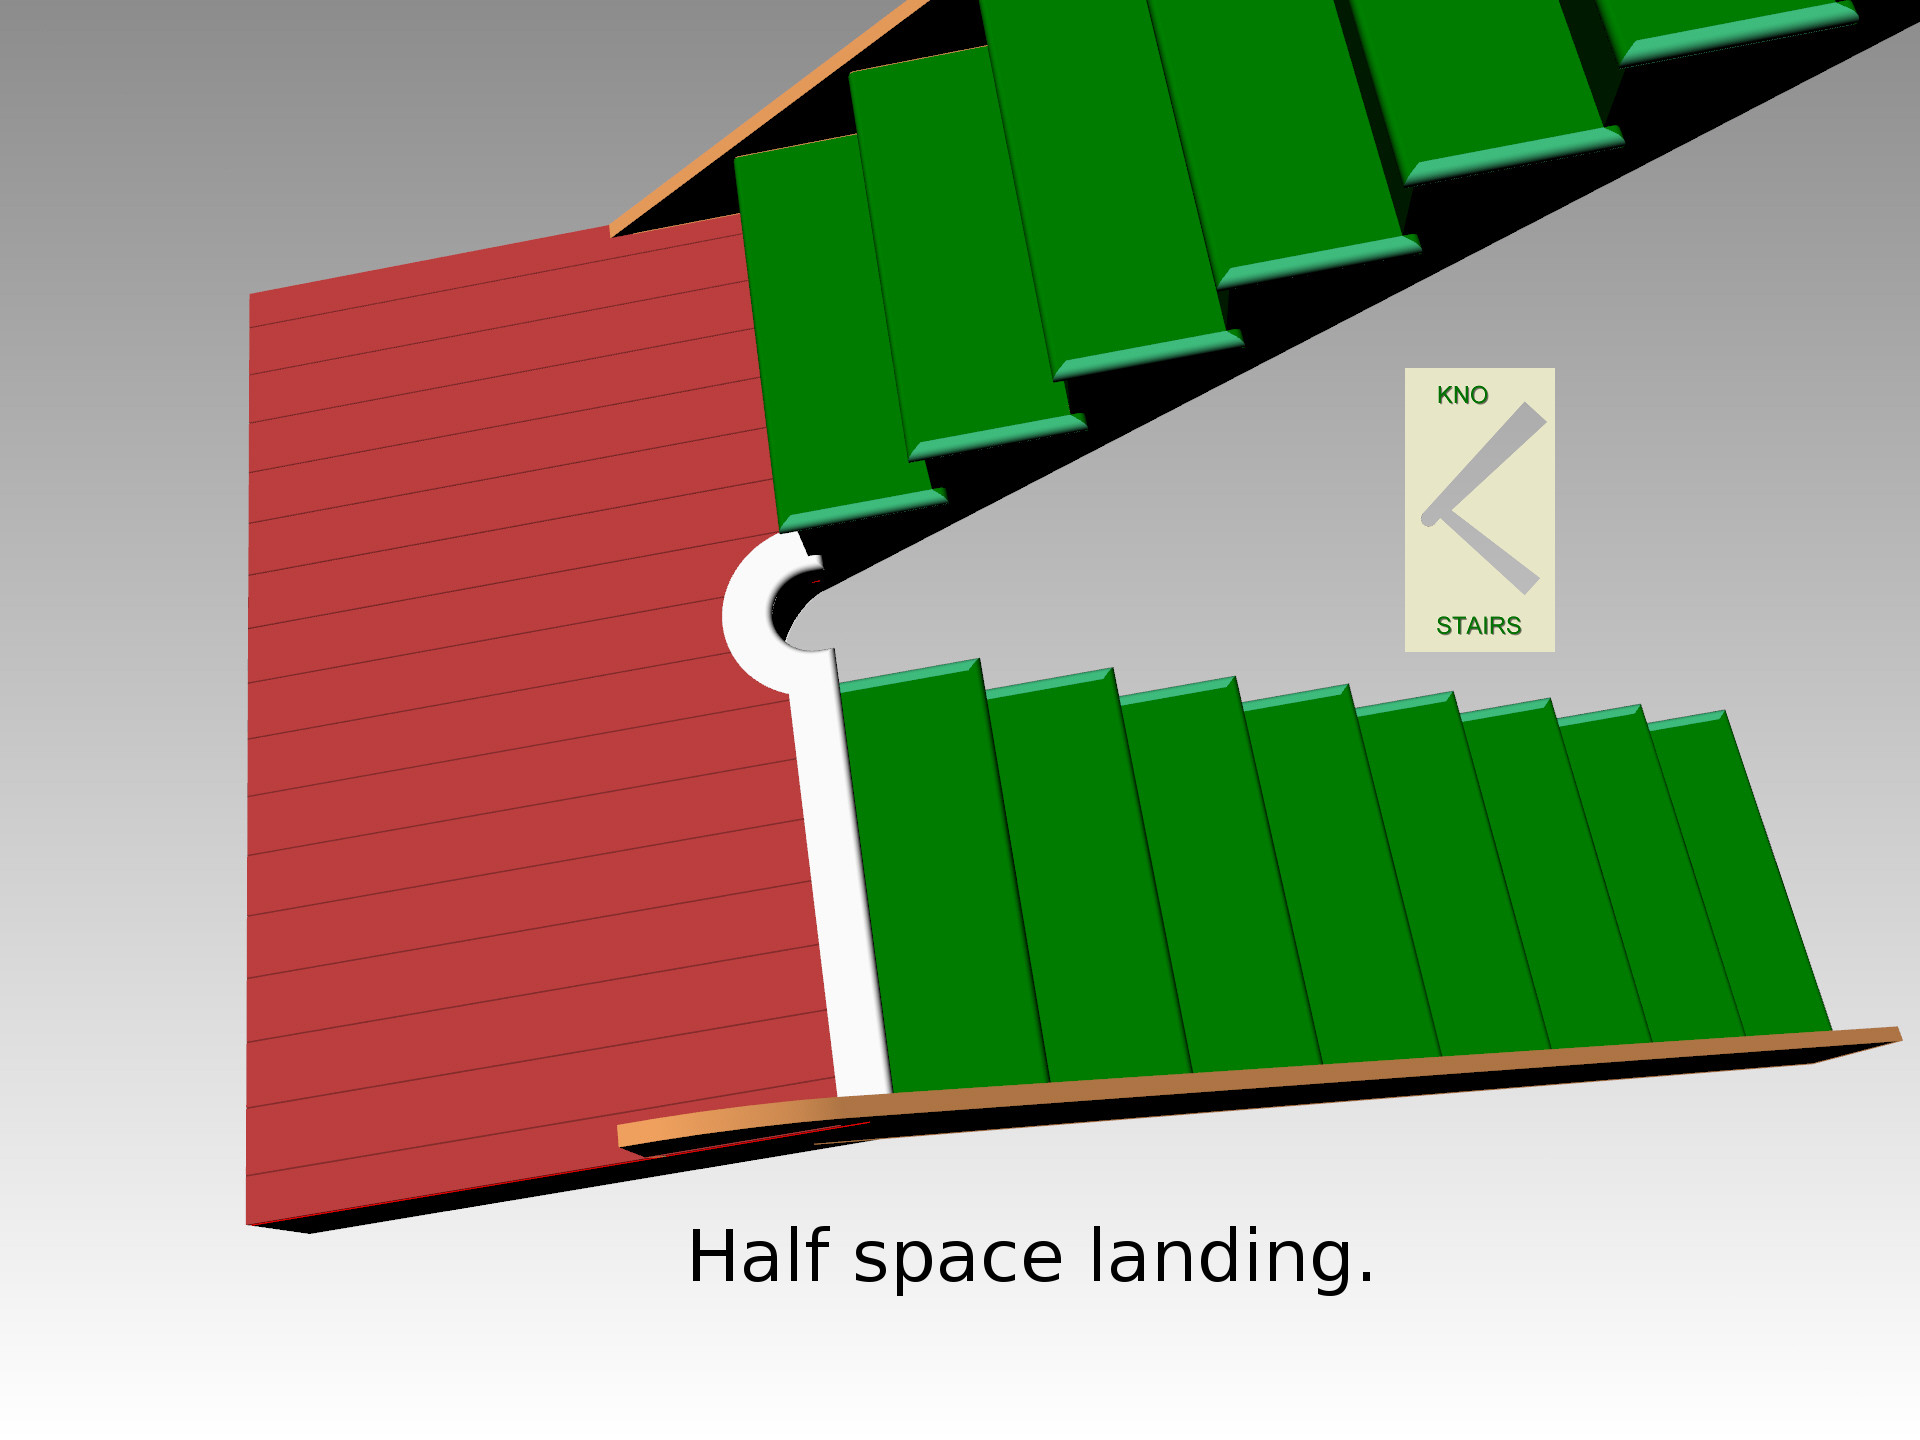 Half space landing. used to turn 180º in the flight.